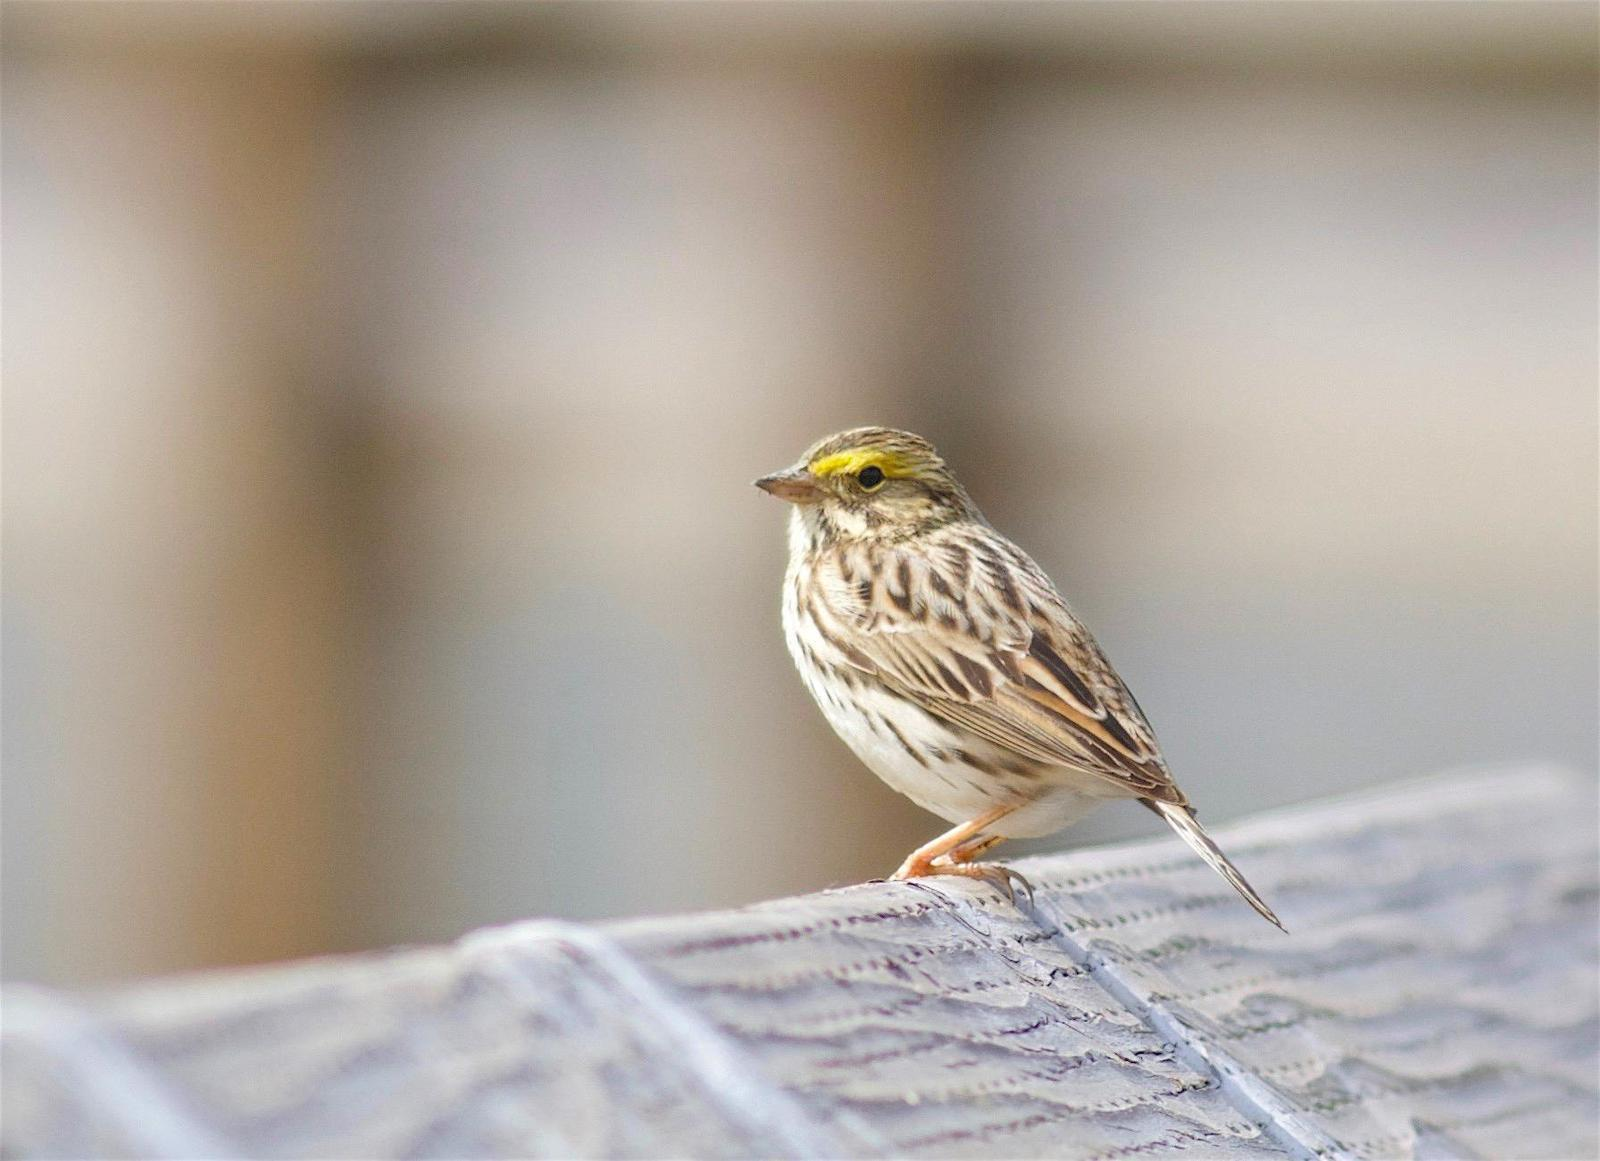 Savannah Sparrow Photo by Kathryn Keith